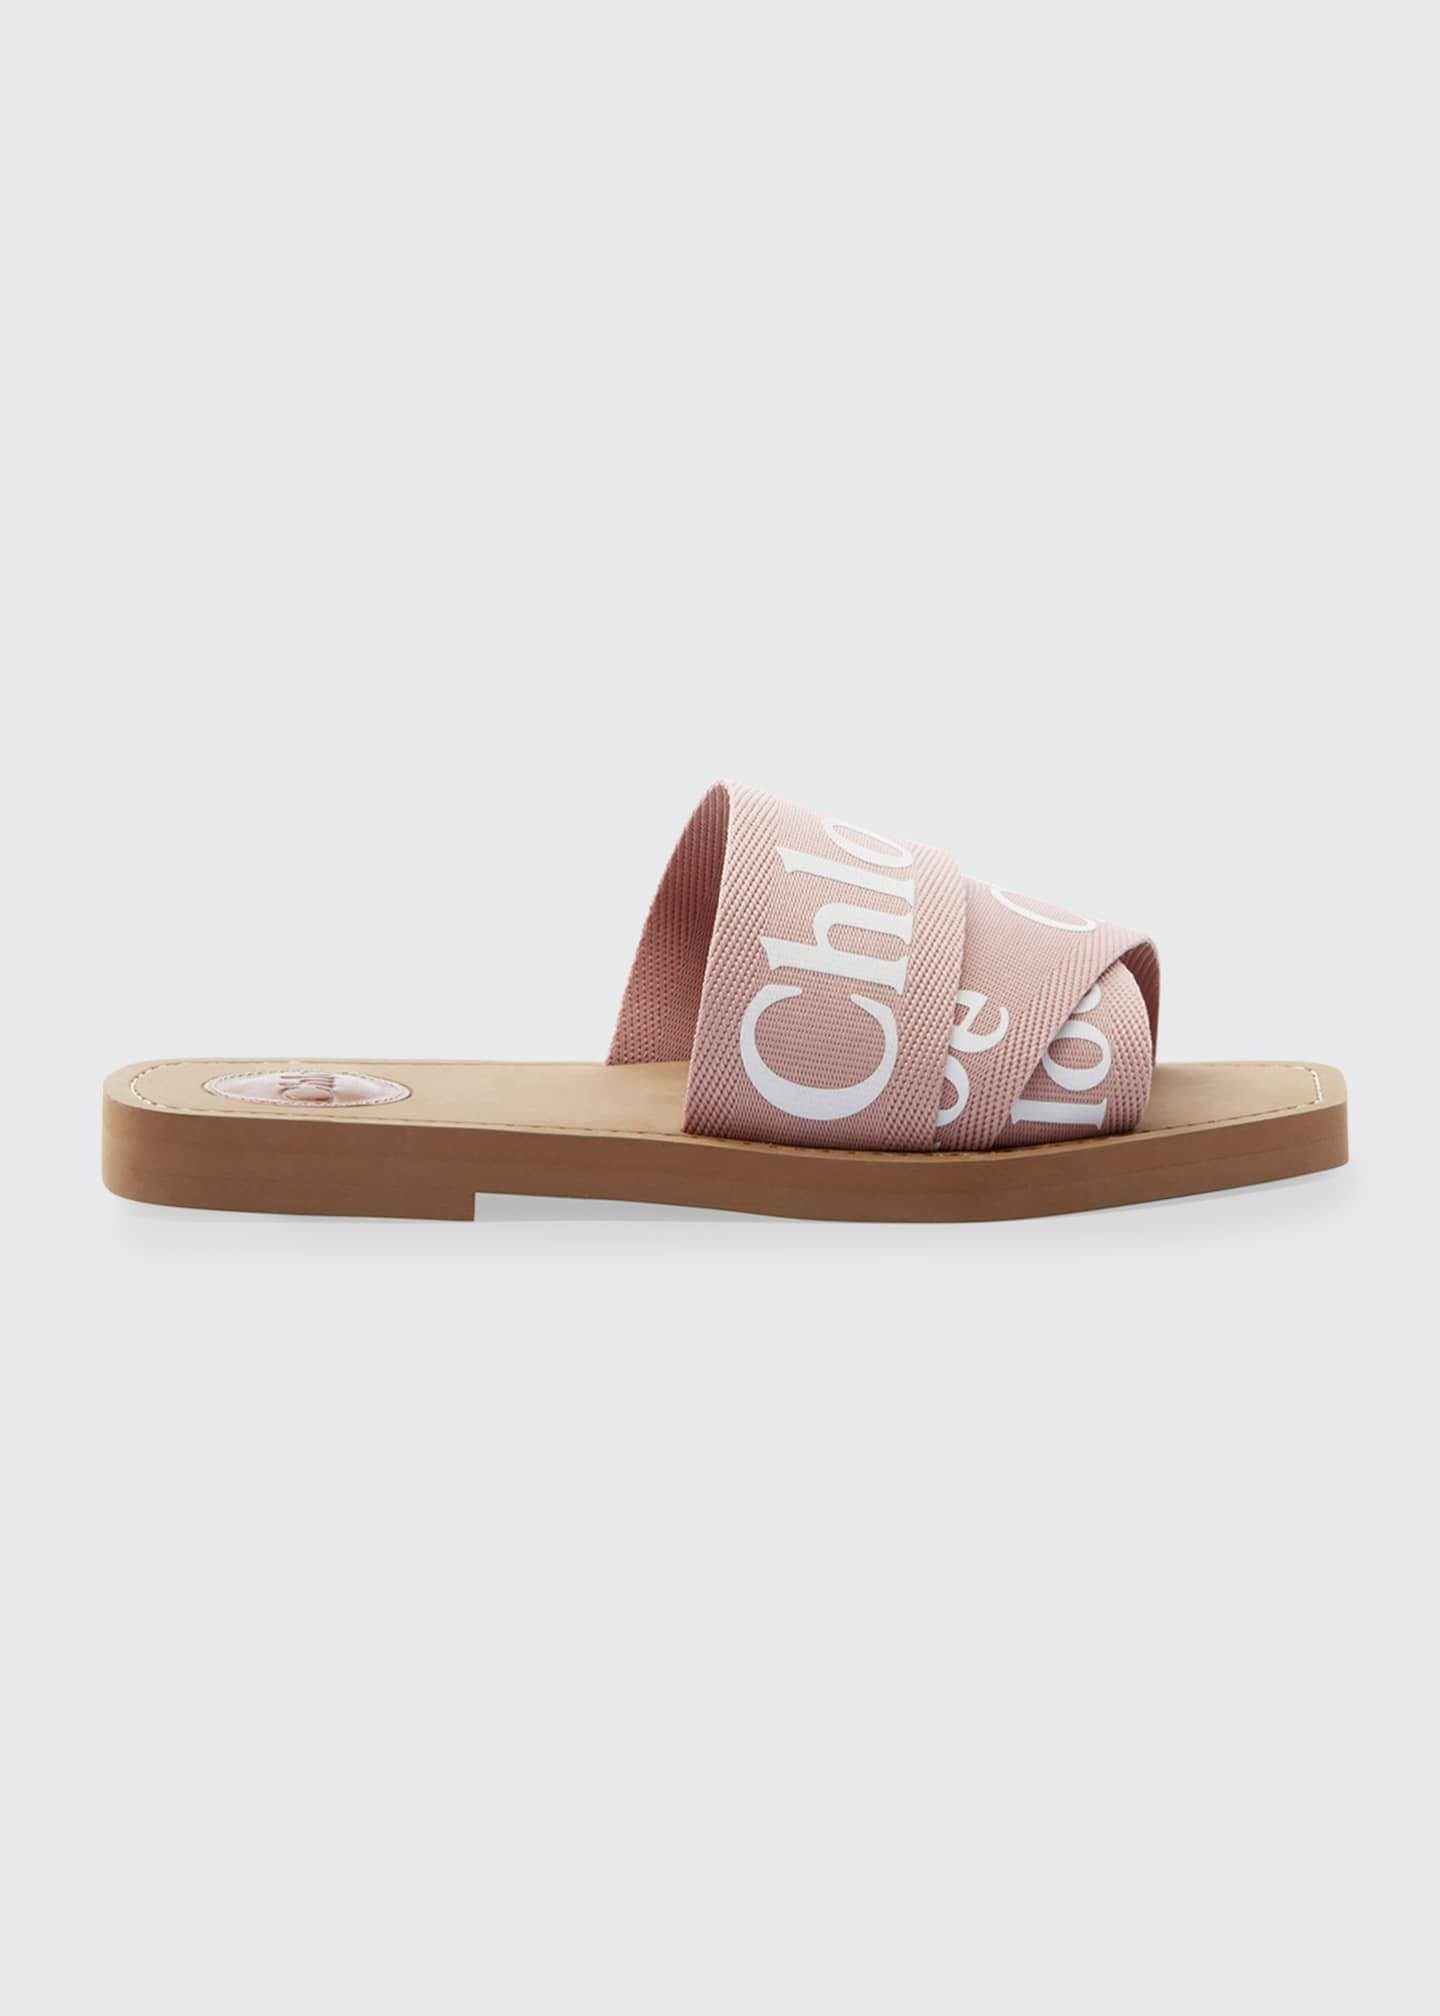 Chloe Woody Flat Logo Ribbon Slide Sandals